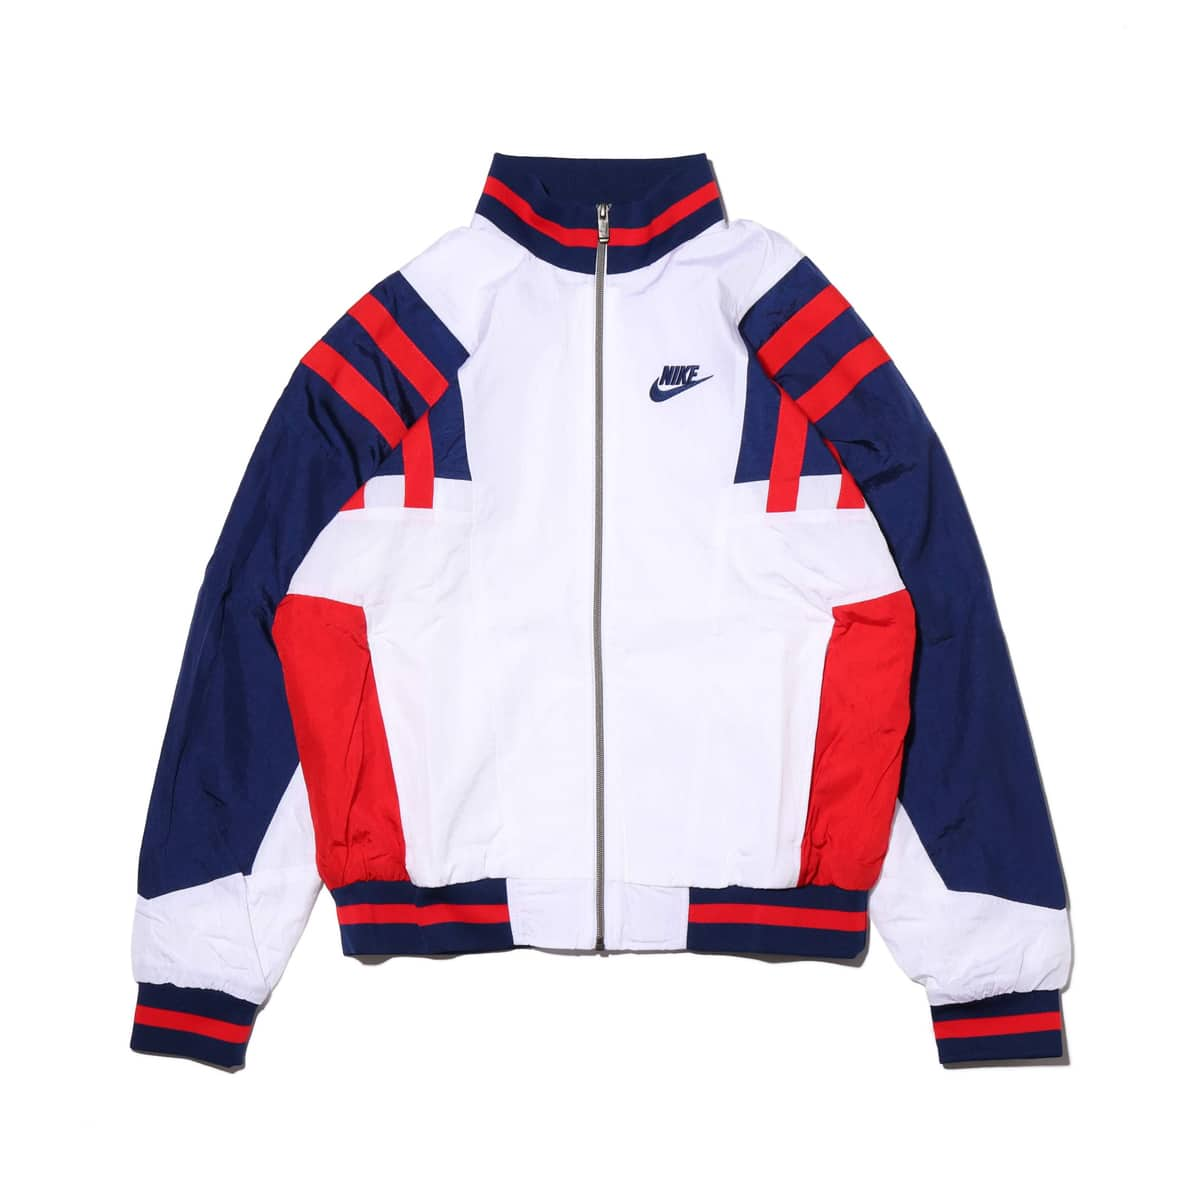 NIKE AS M NSW RE-ISSUE JKT WVN WHITE/BLUE VOID/UNIVERSITY RED/BLUE VOID 20SP-S_photo_large